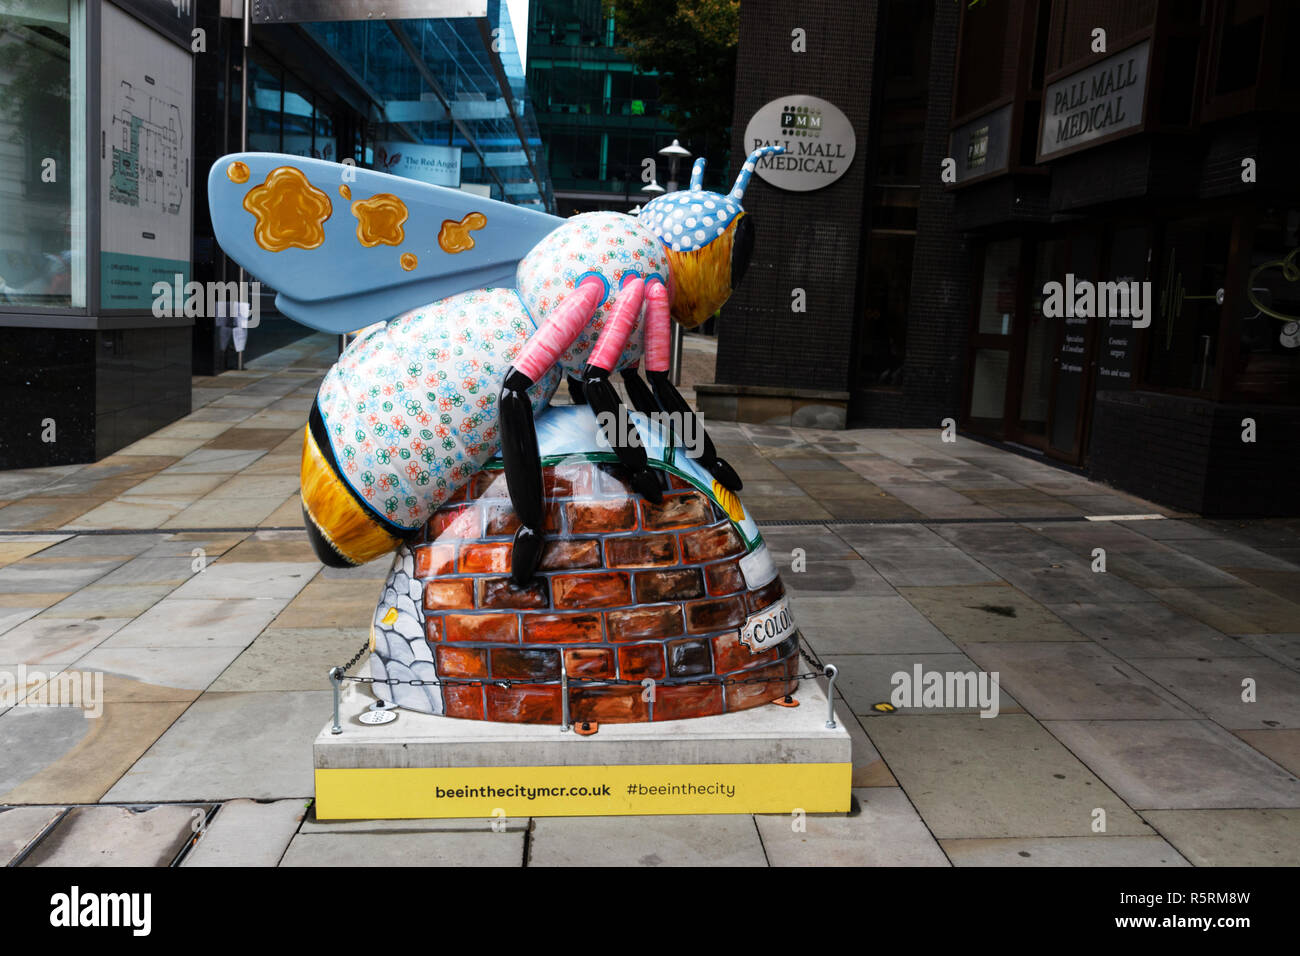 Bee In The City Sculpture - Stock Image